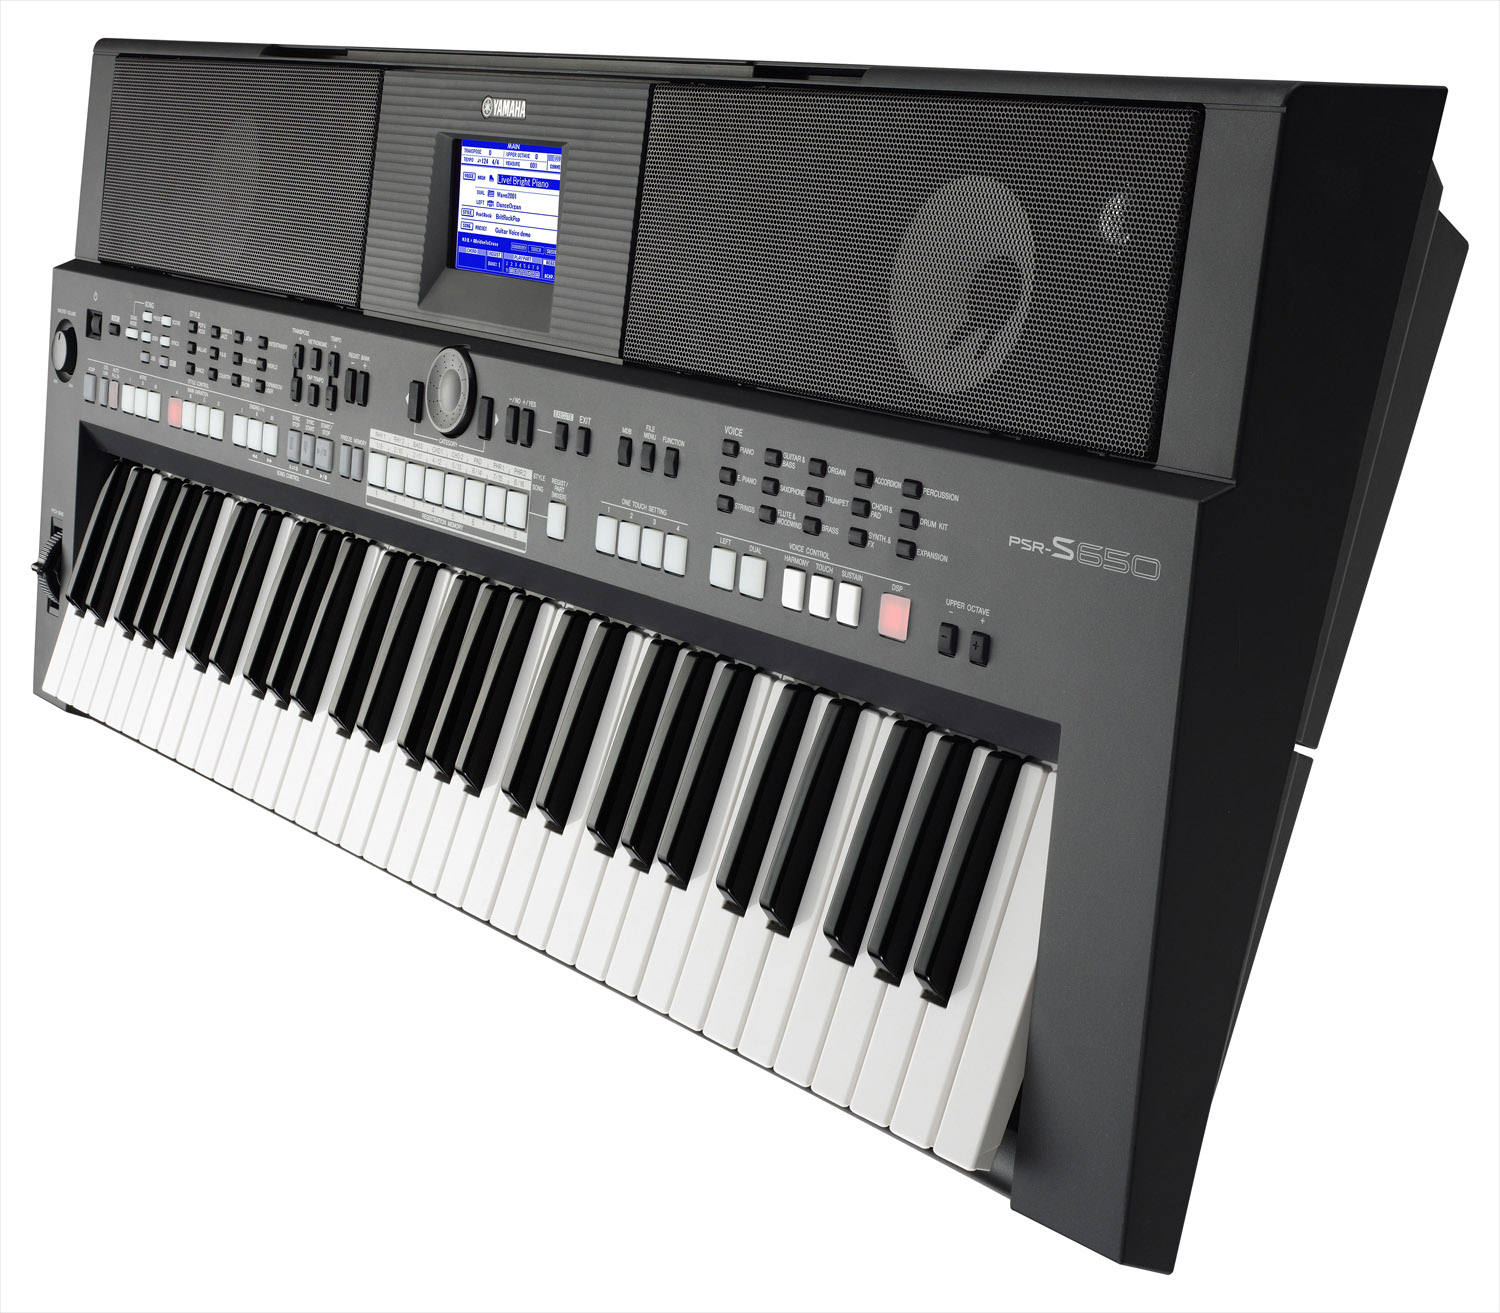 yamaha psr s650 arranger workstation keyboard yamaha. Black Bedroom Furniture Sets. Home Design Ideas